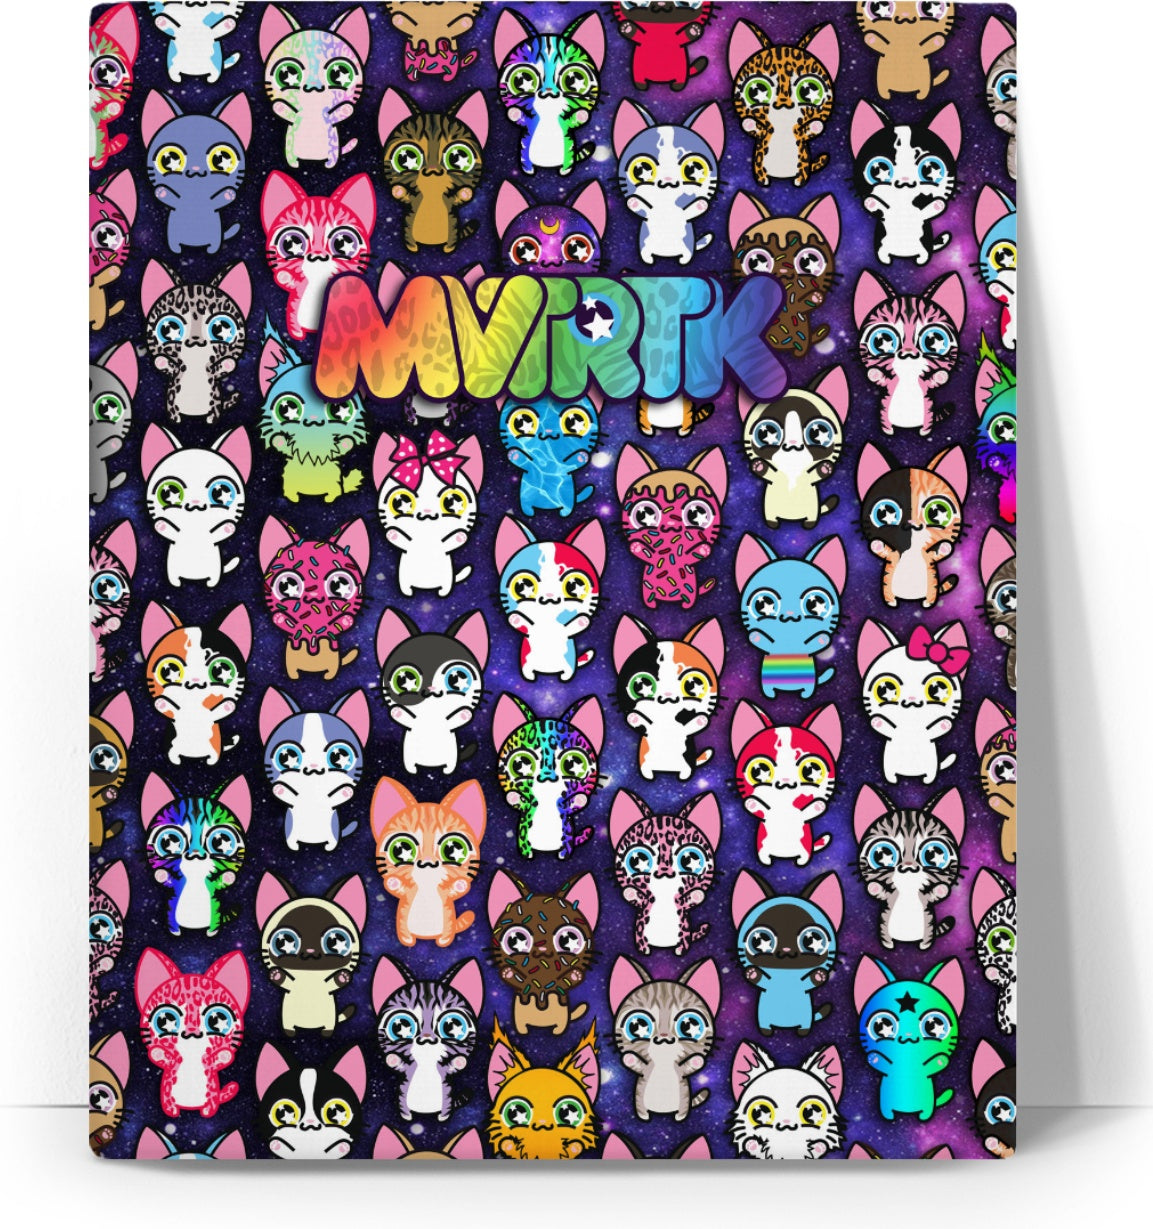 MVTRTK SPACE KITTY Canvas